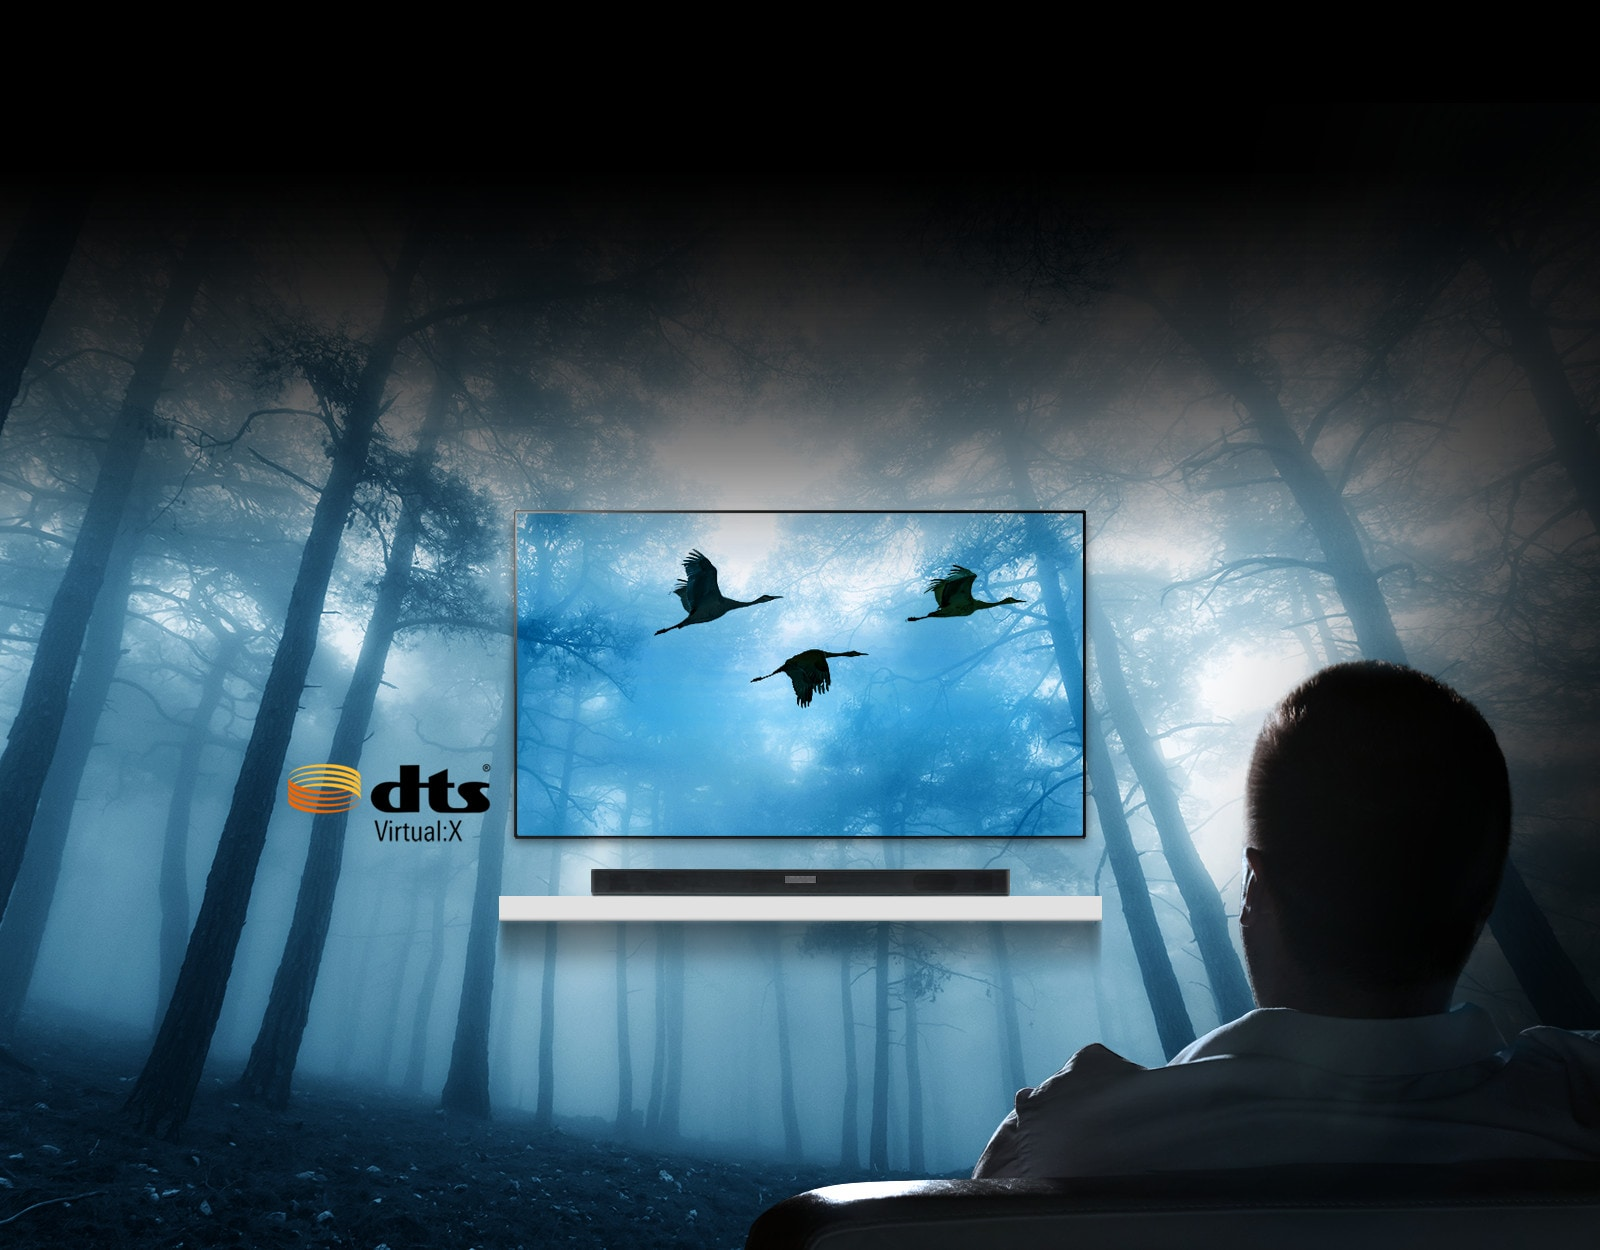 DTS Virtual : X Promises a Full, Three-dimensional Surround Sound